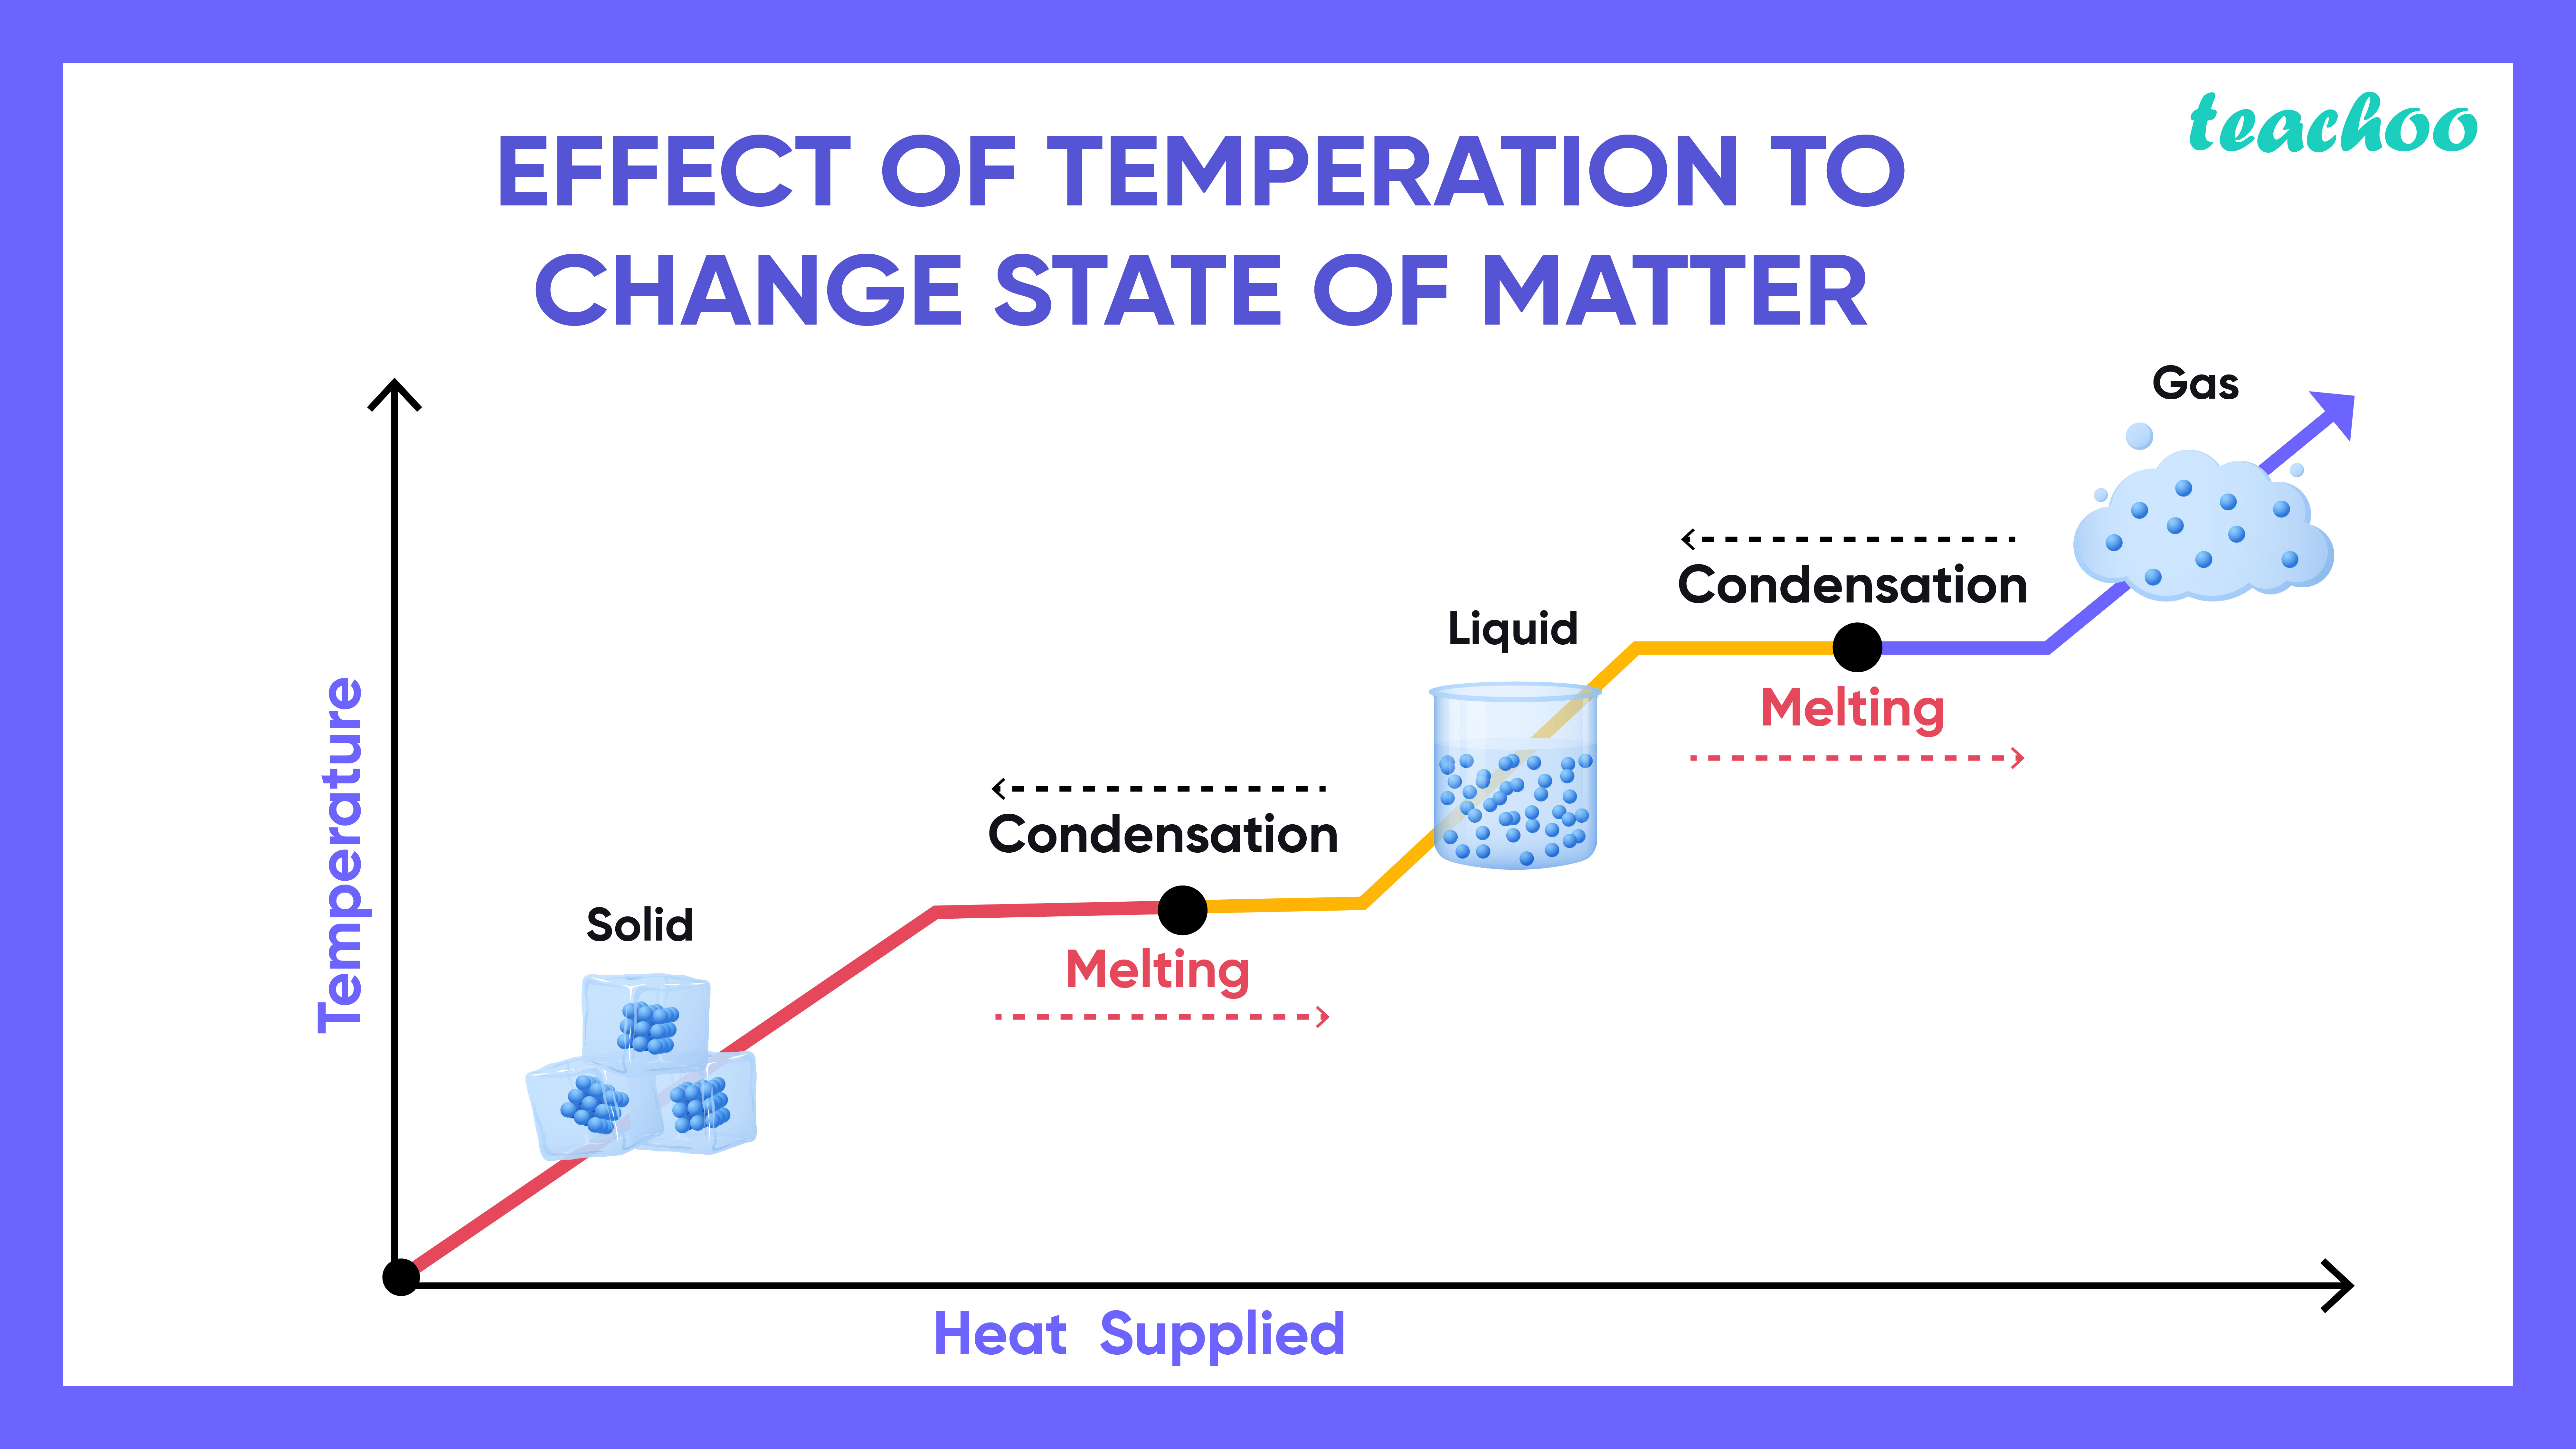 Effect of Temperature to Change State of Matter-Teachoo-01.jpg